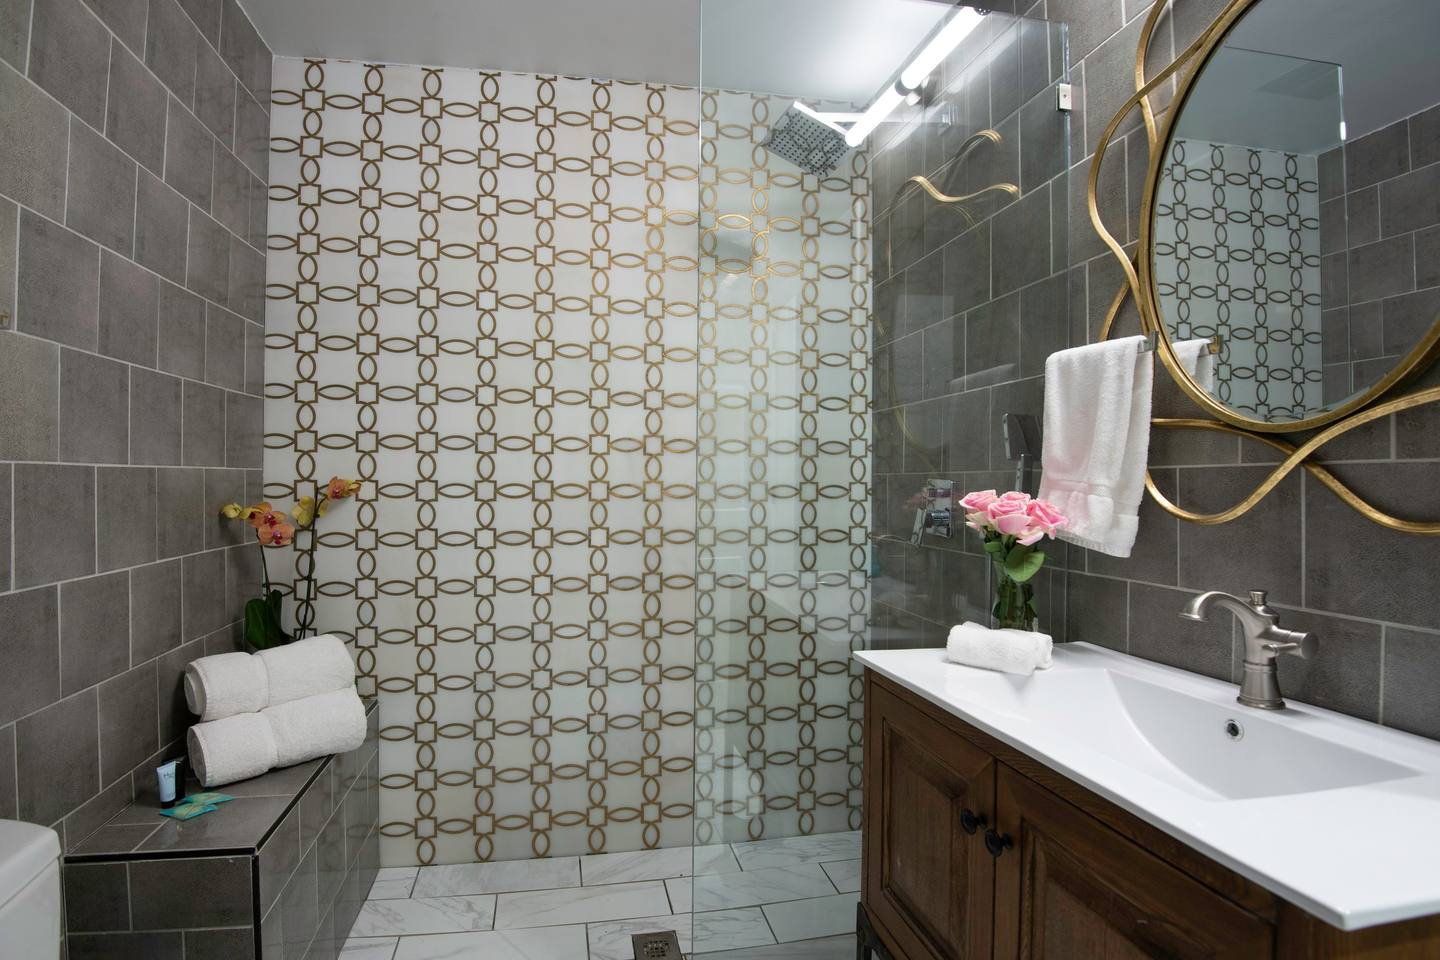 8BR-Best Location! Heated Pool, Jacuzzi, Spa & Gym photo 5336743